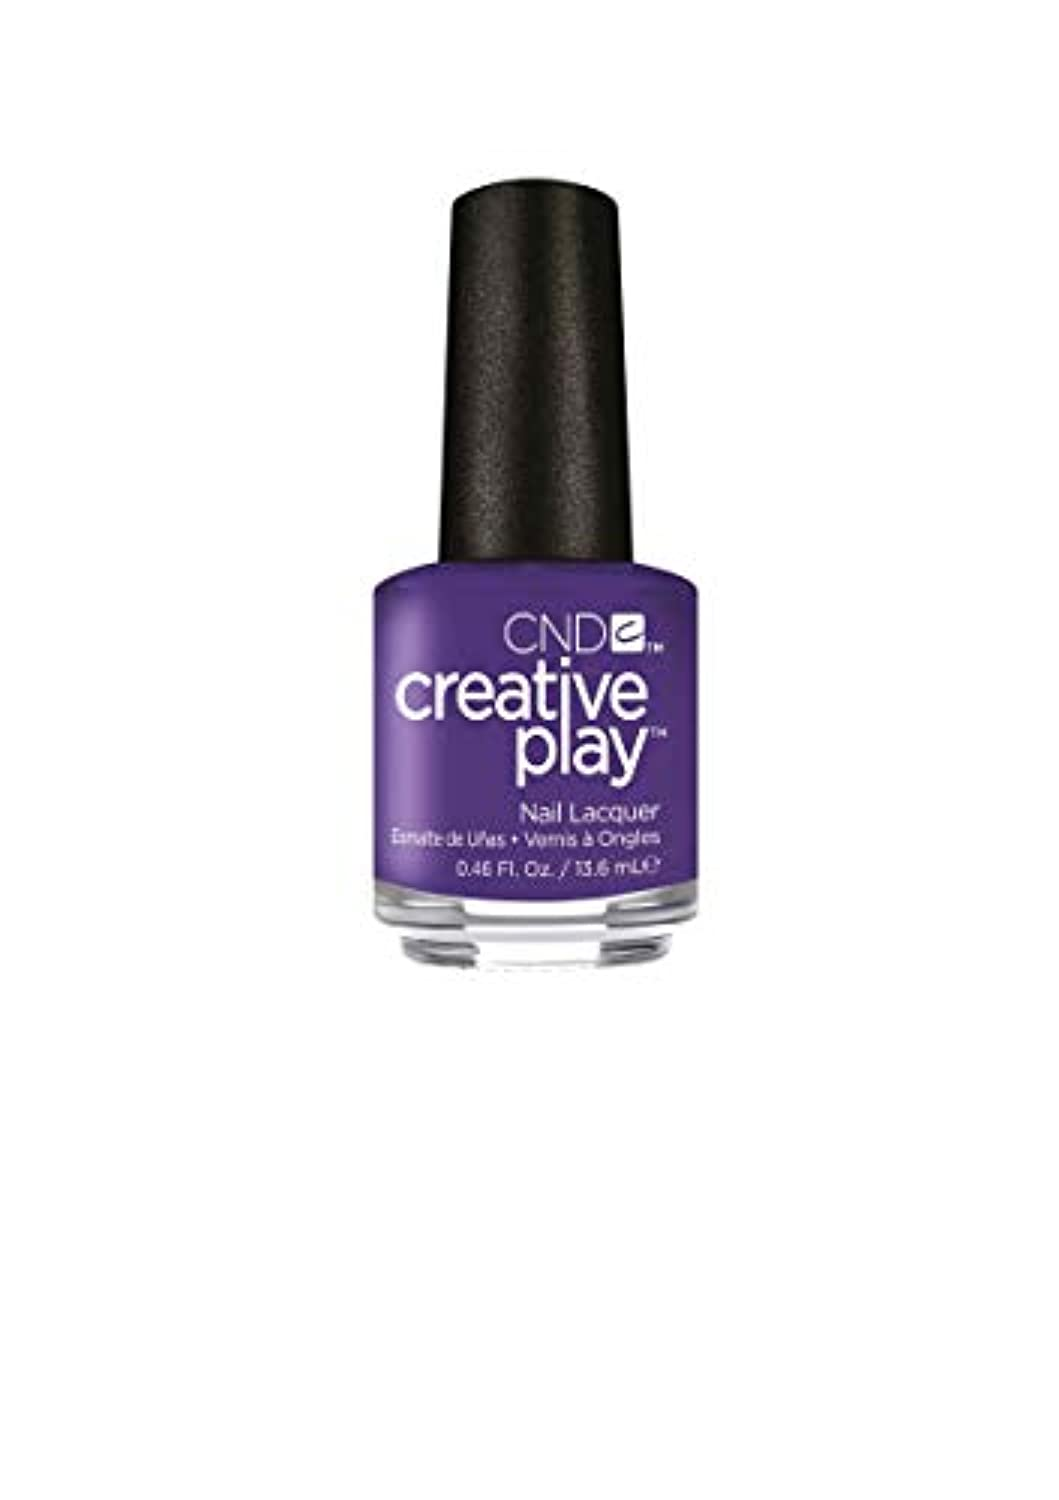 CND Creative Play Lacquer - Isn't She Grape? - 0.46oz / 13.6ml